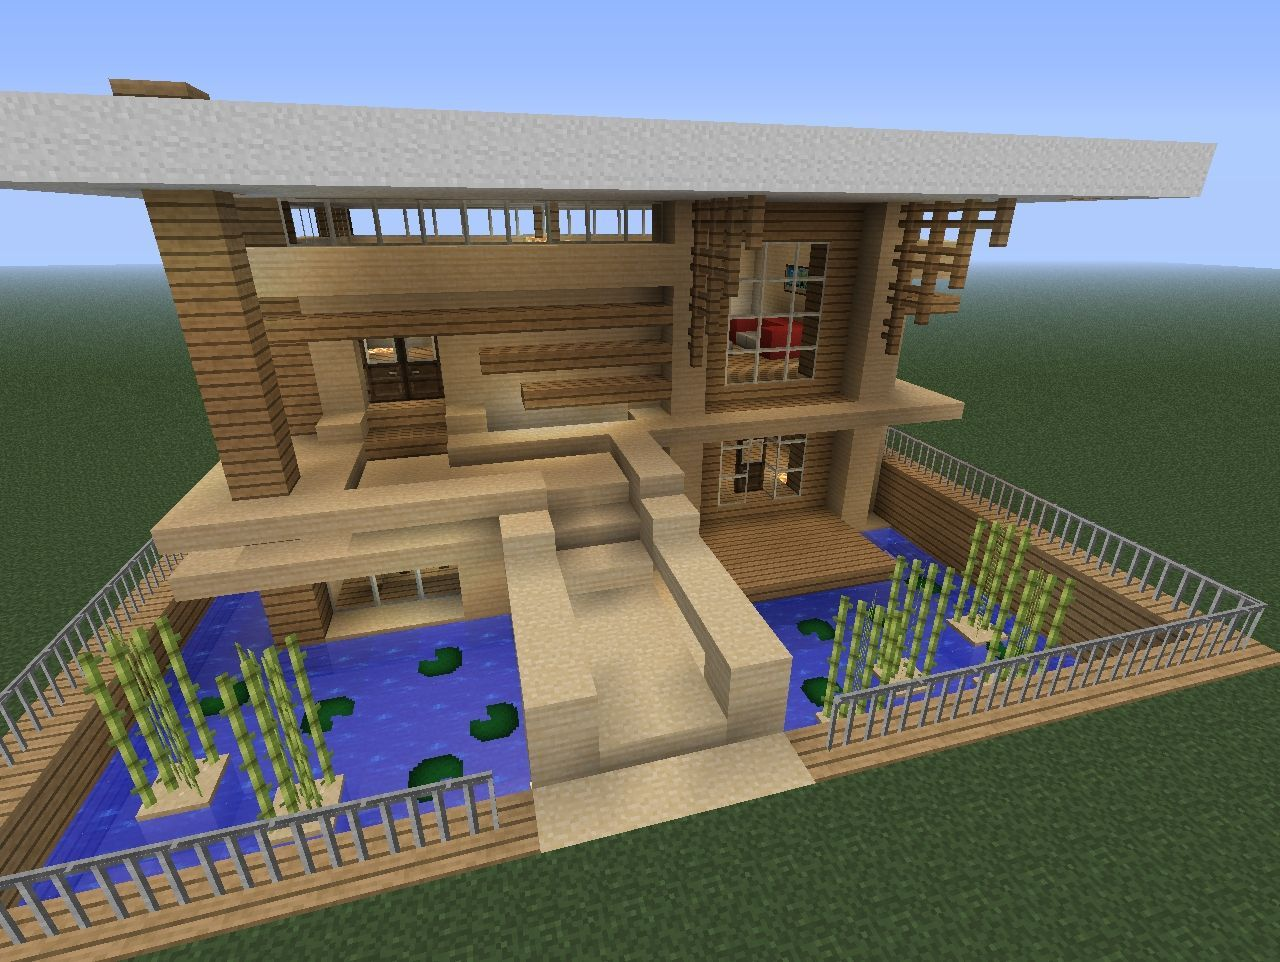 Best 25 minecraft houses ideas on pinterest minecraft for Minecraft home designs